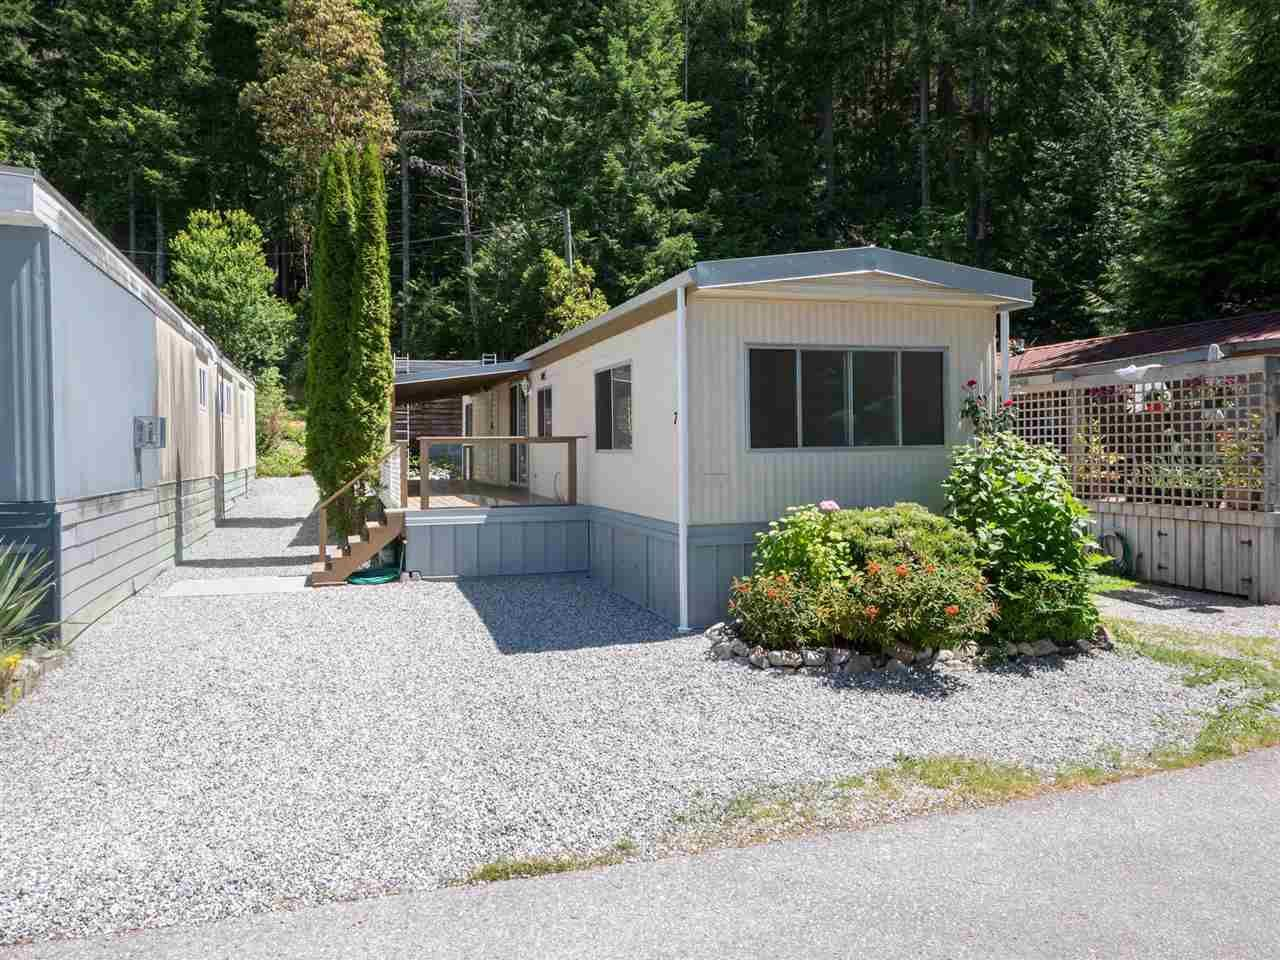 720 sf mobile home has been completely renovated as of 2021. New drainage installed in driveway as well, topped with quality gravel.